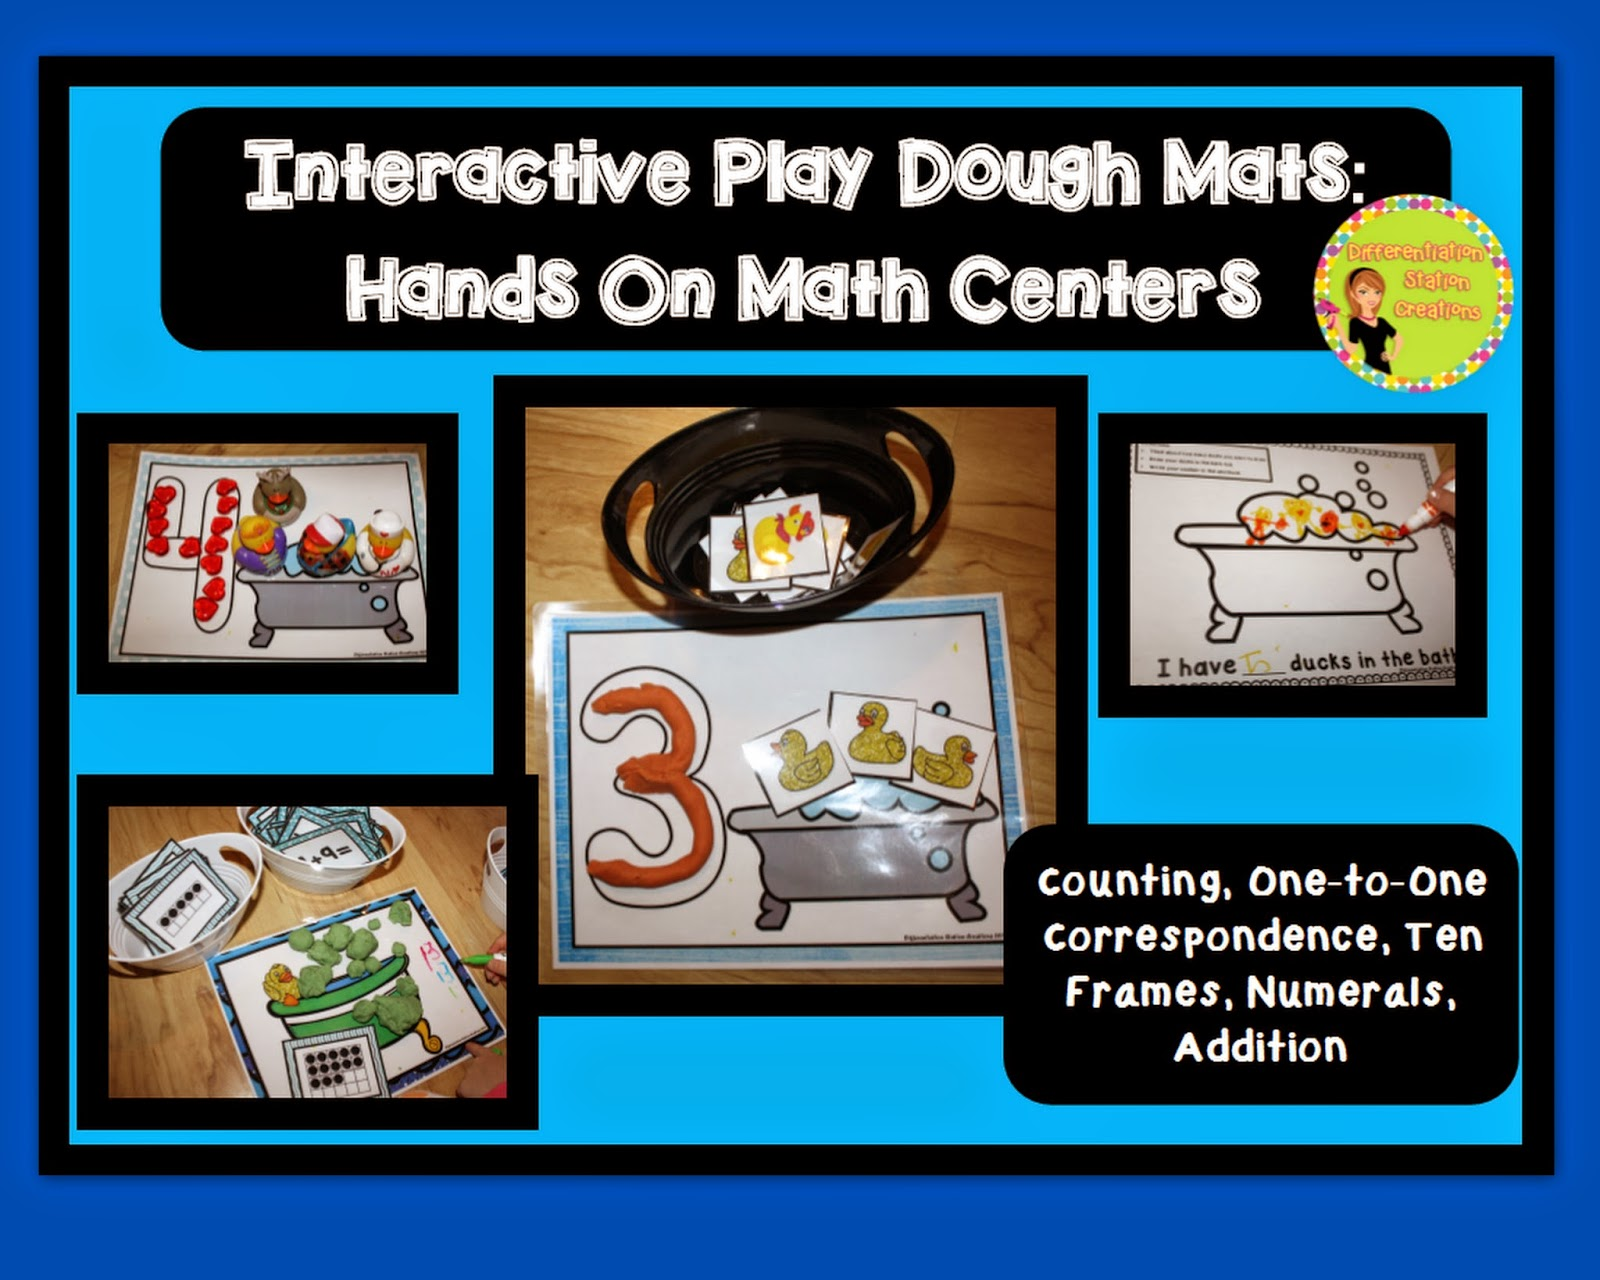 http://www.teacherspayteachers.com/Product/Interactive-Play-Dough-Mats-Counting-Centers-Games-Printables-Bubbles-1652752